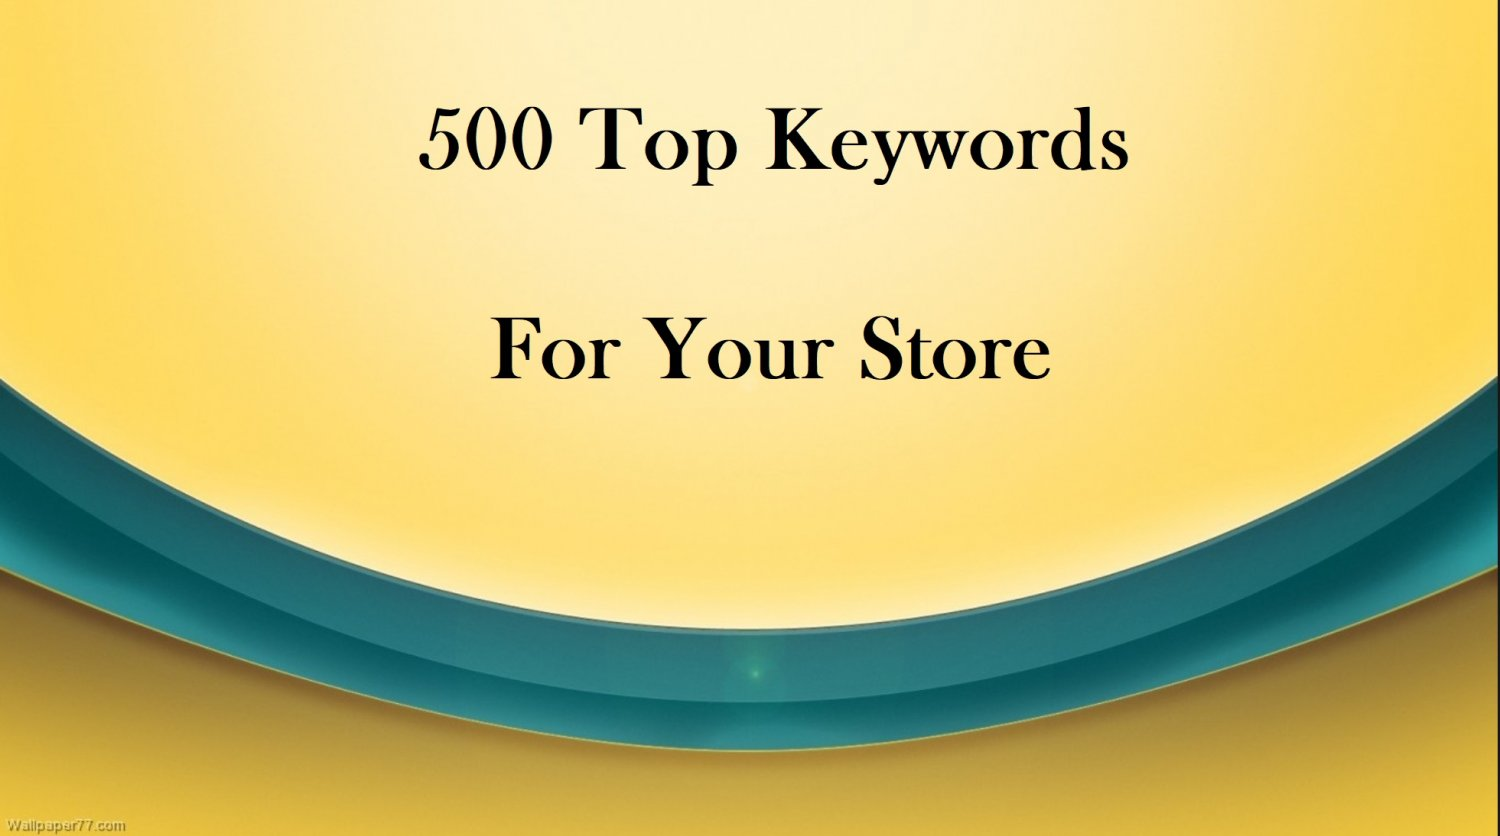 Keyword Research For Your Store 500